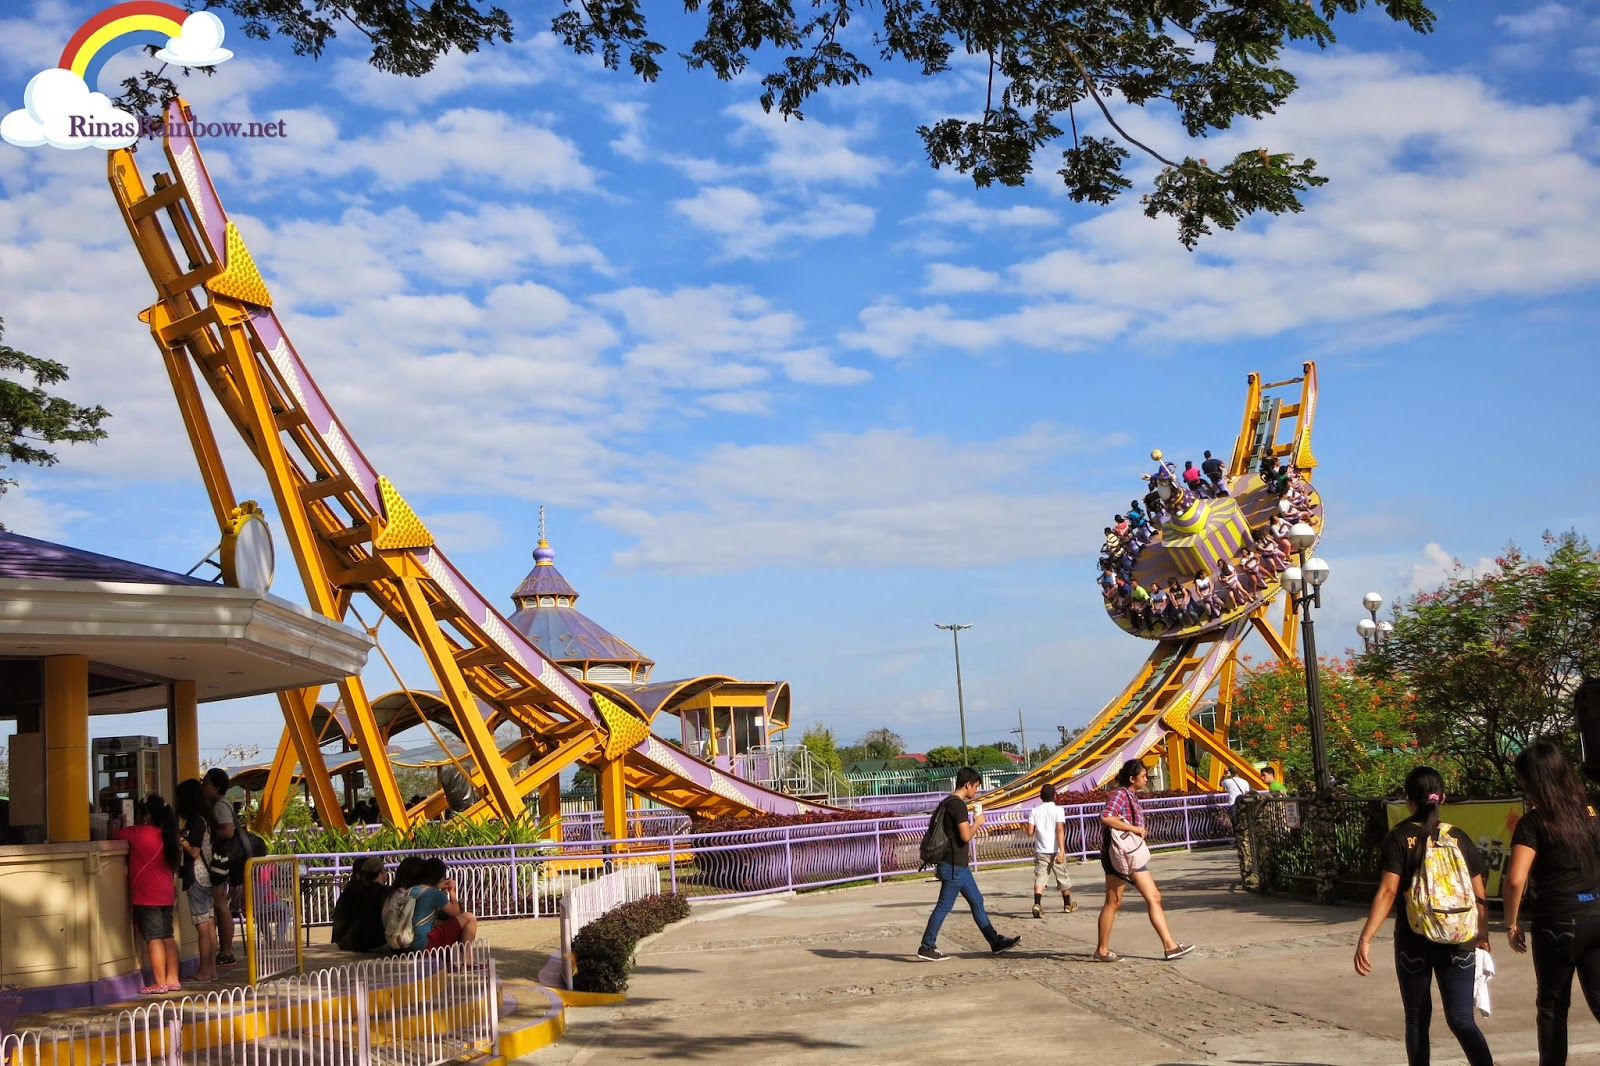 Enchanted Kingdom Disk-O-Magic